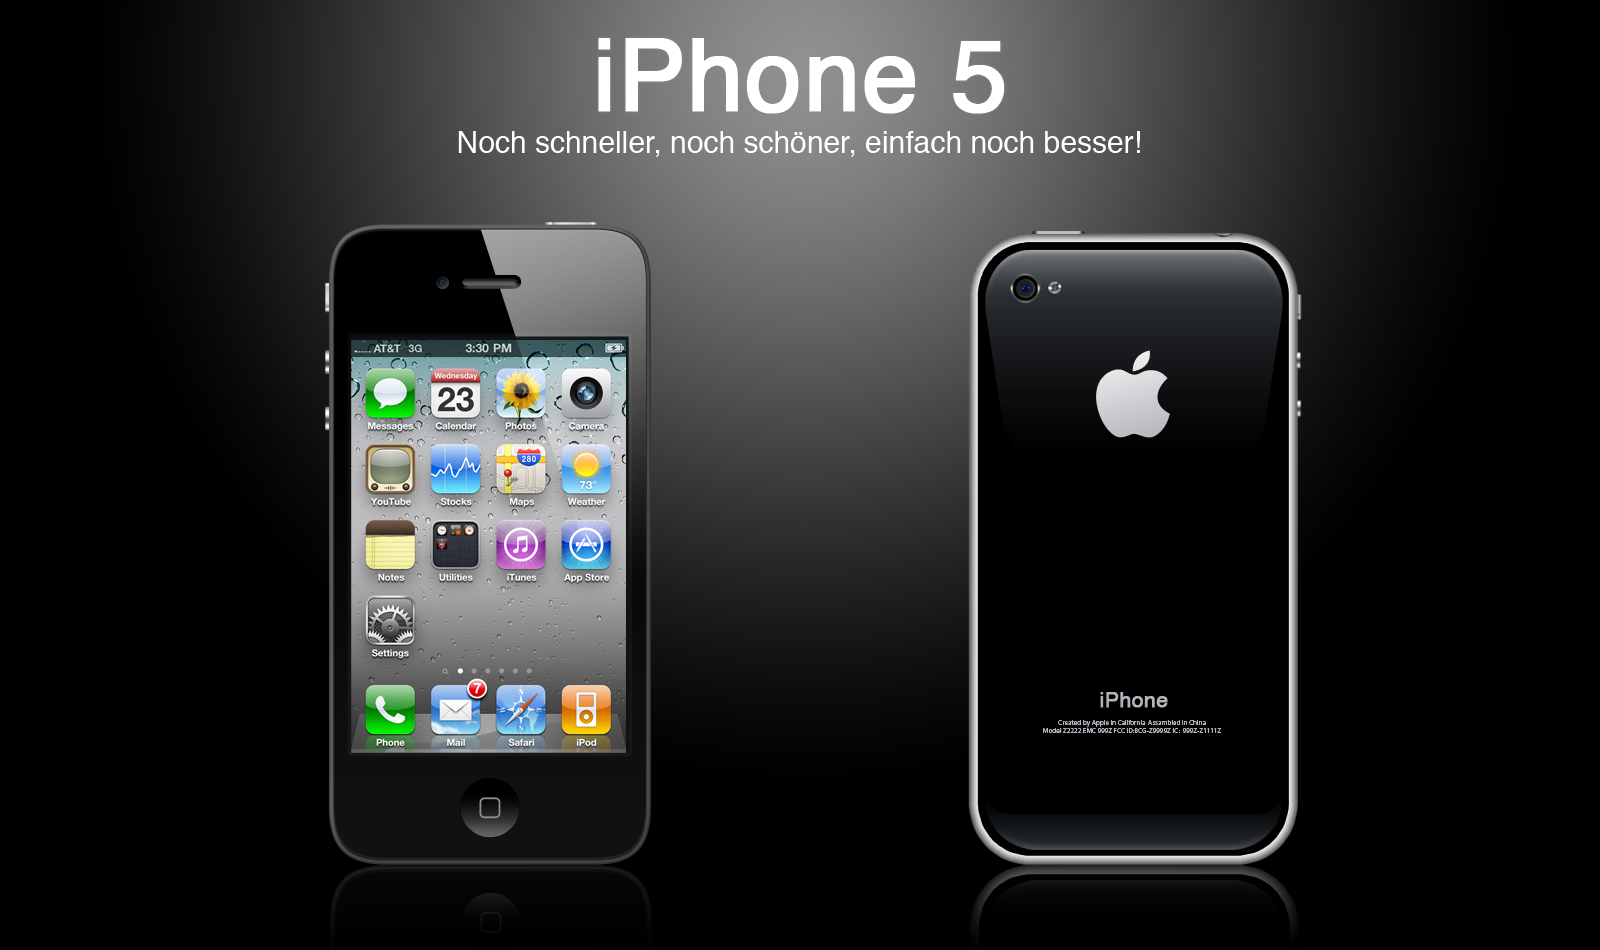 Wallpapers If IPhone 5 And Review